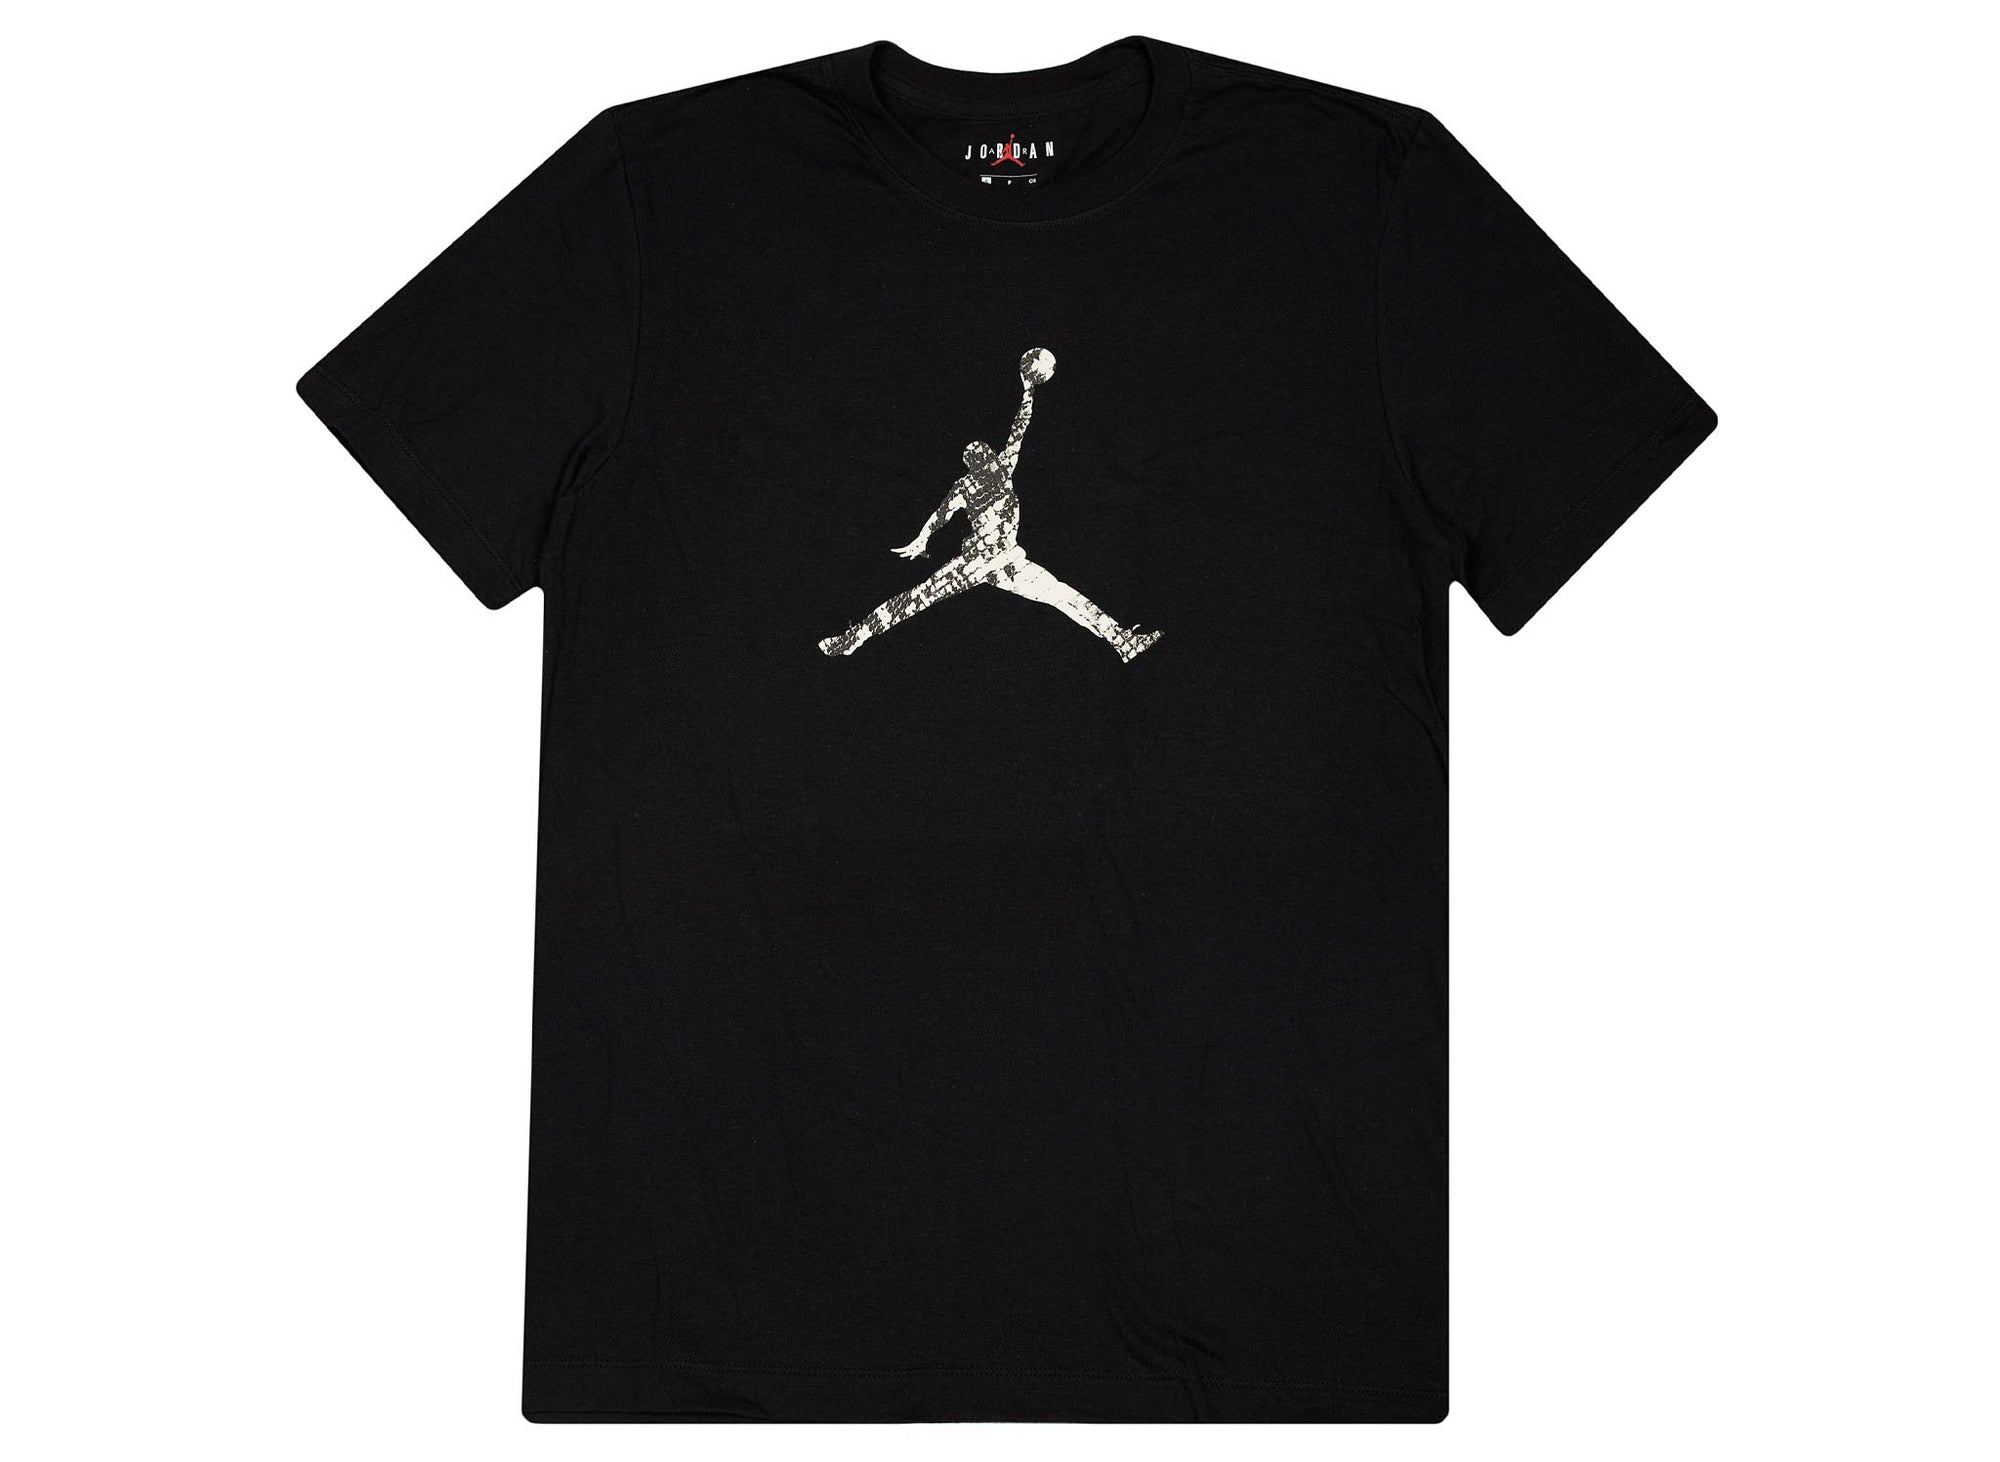 the best attitude 80744 a09ed AIR JORDAN LEGACY AJ11 SNAKESKIN TEE SHIRT